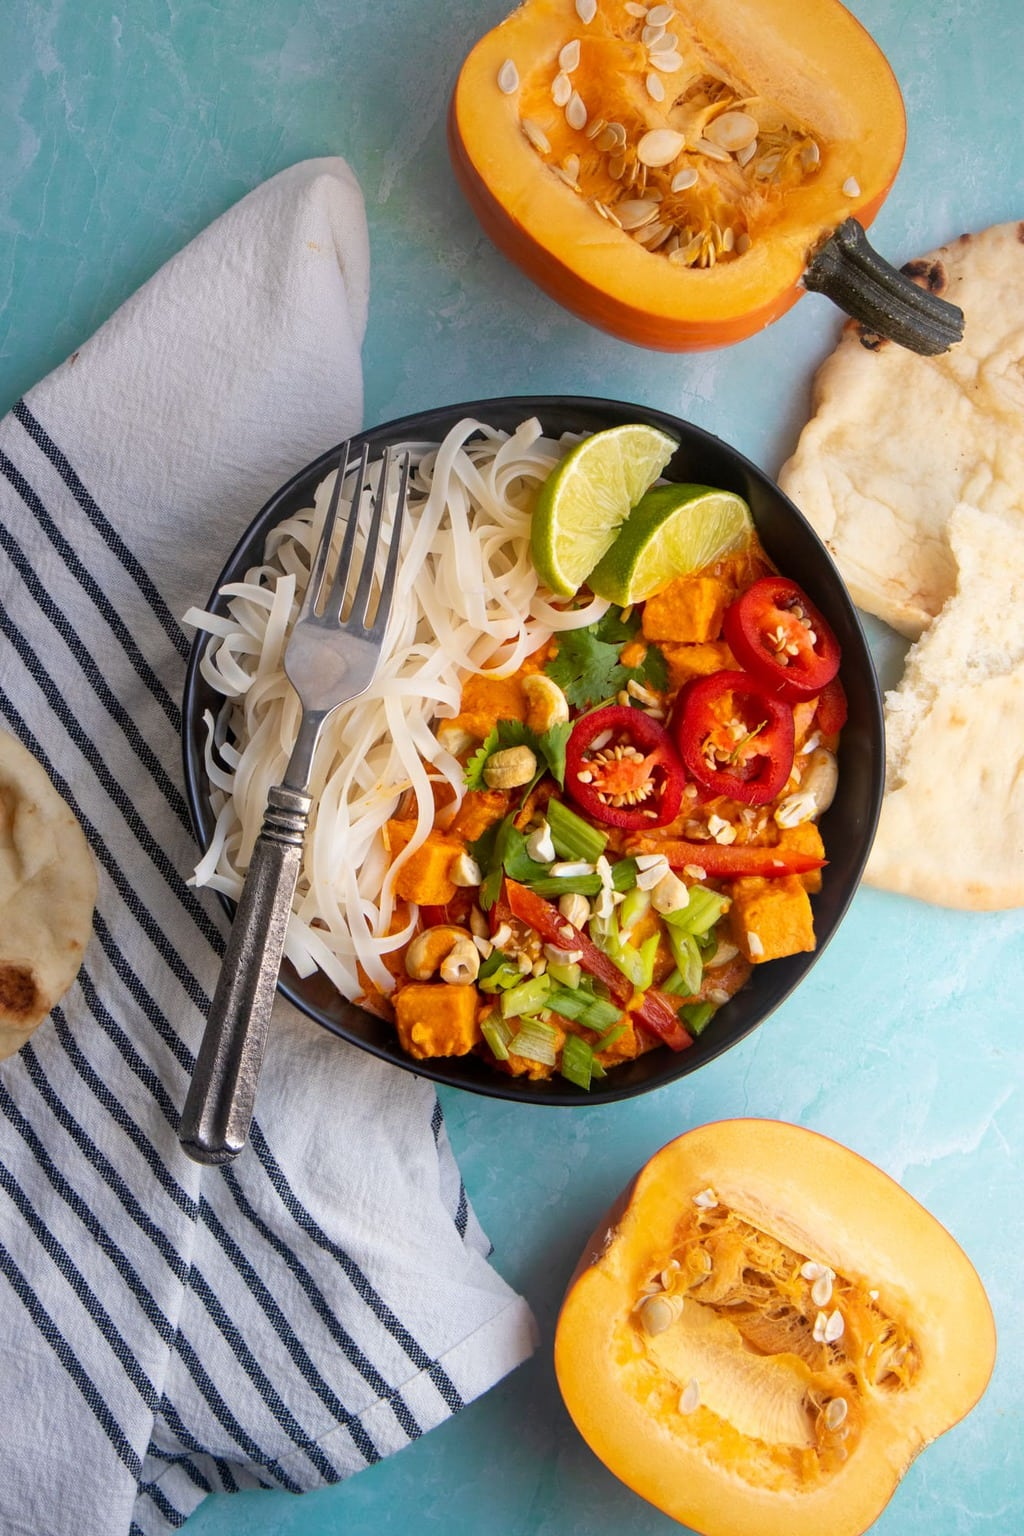 You will love these 12 healthy recipes for The Daniel Fast. This 'fast' is simply about eliminating unhealthy foods from your diet. It's not a fast from all food, which is not healthy, but a fast from certain unhealthy foods.